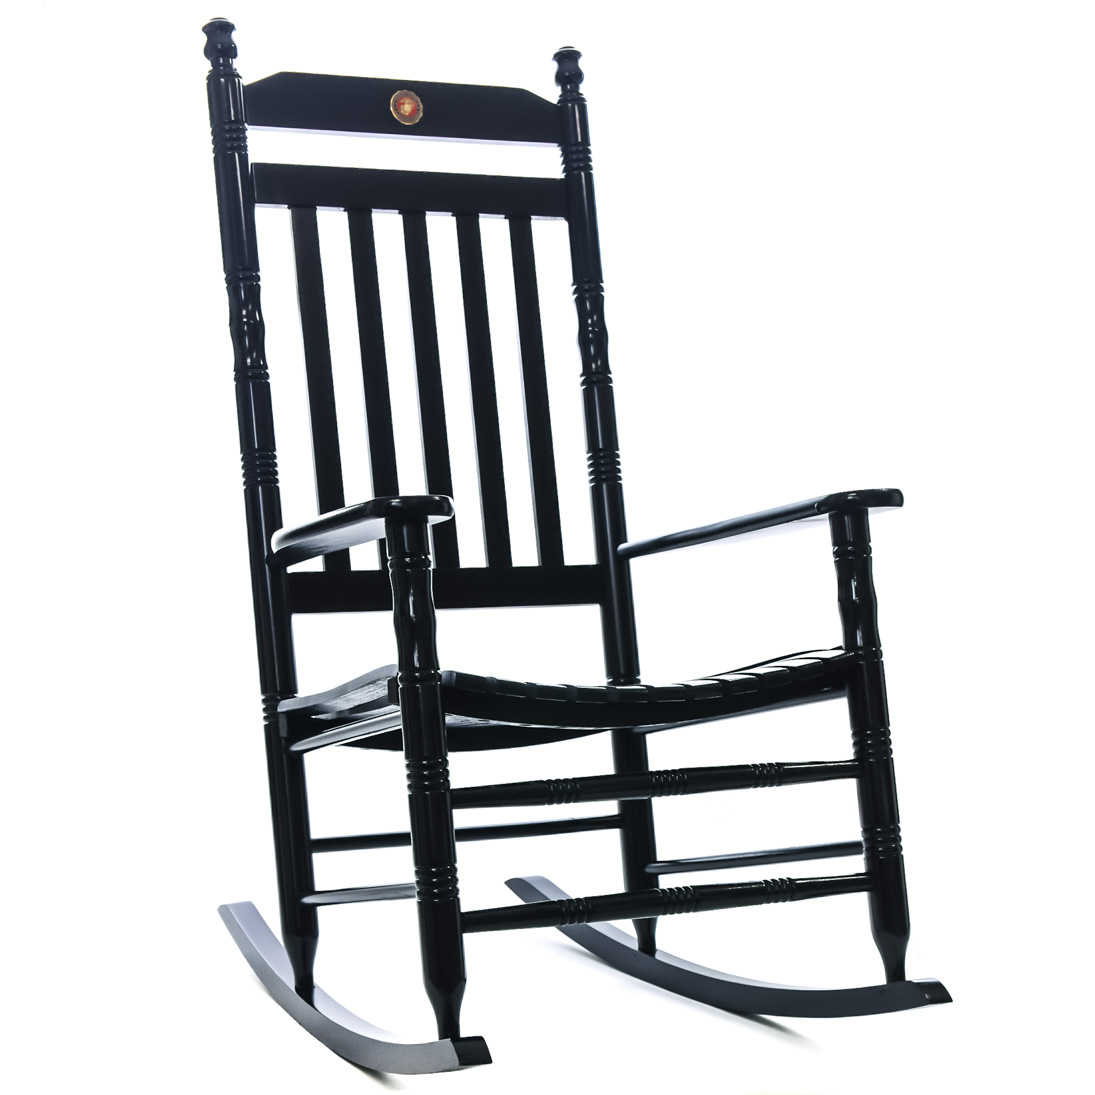 U.S. Marine Corps Fully Assembled Rocking Chair | Military | Rocking Chairs    Cracker Barrel Old Country Store